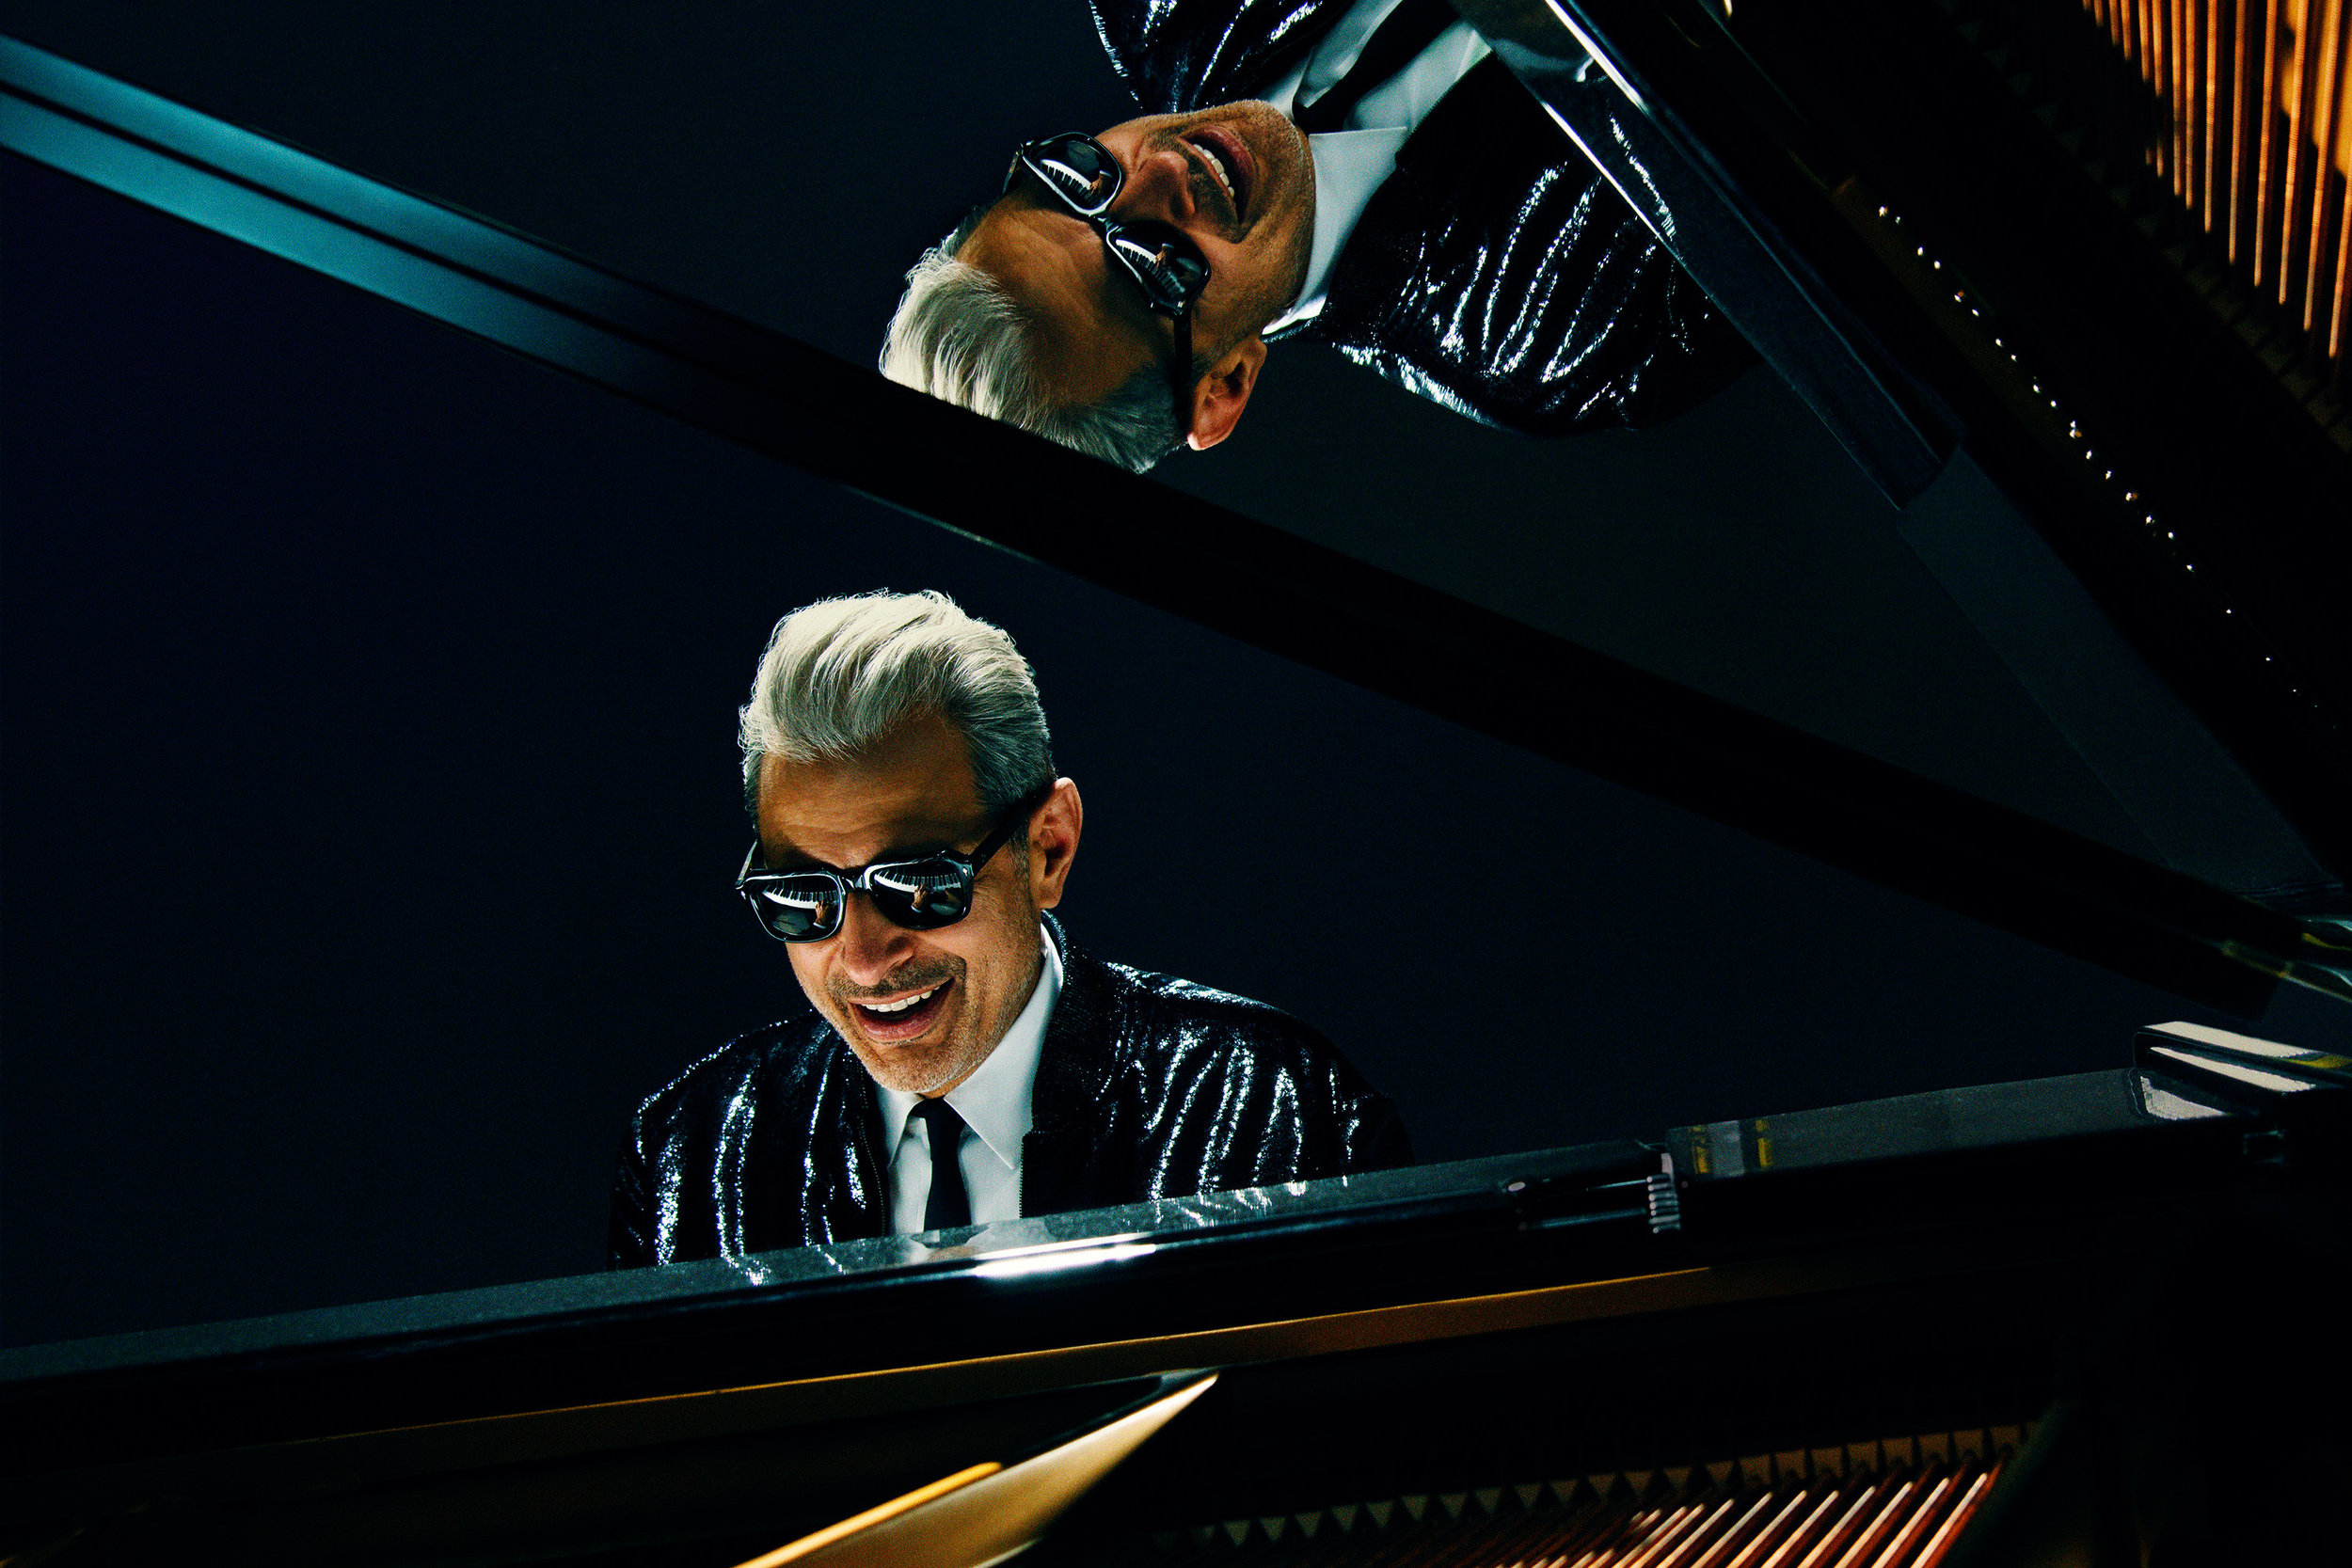 jeff-goldblum-number-1-jazz.jpg